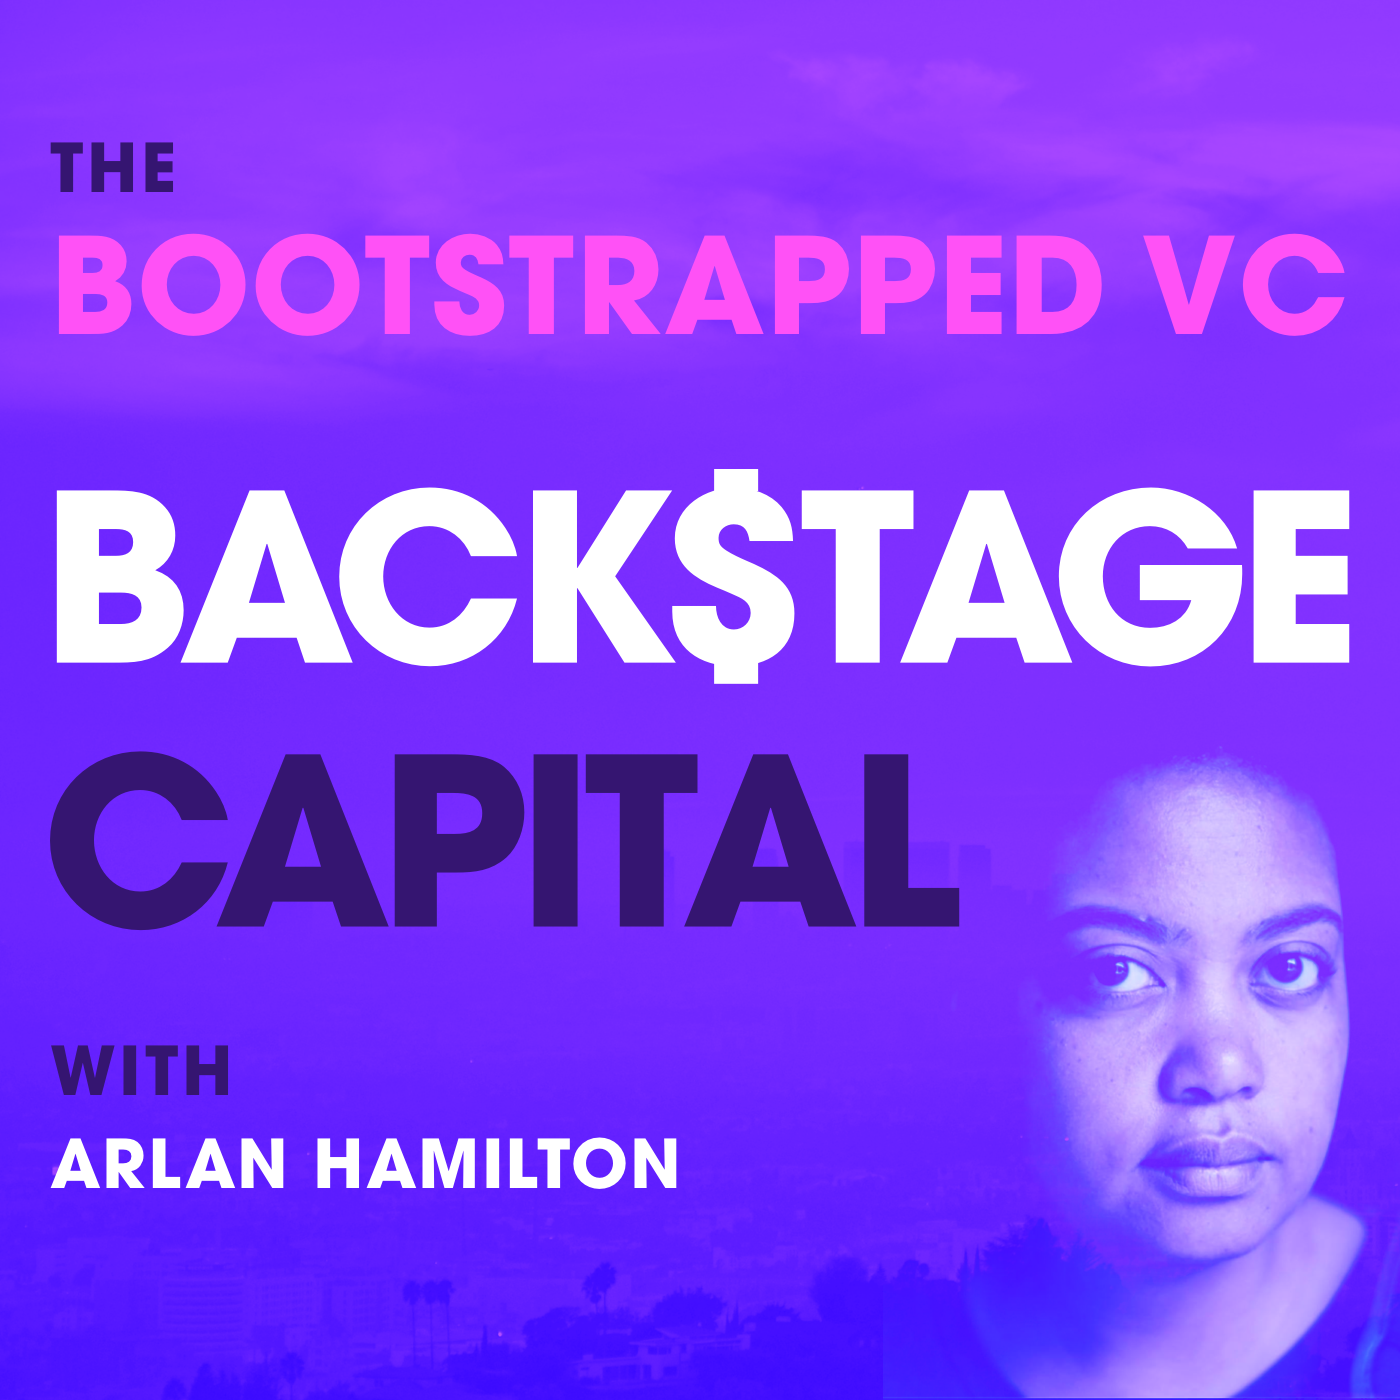 The Bootstrapped VC